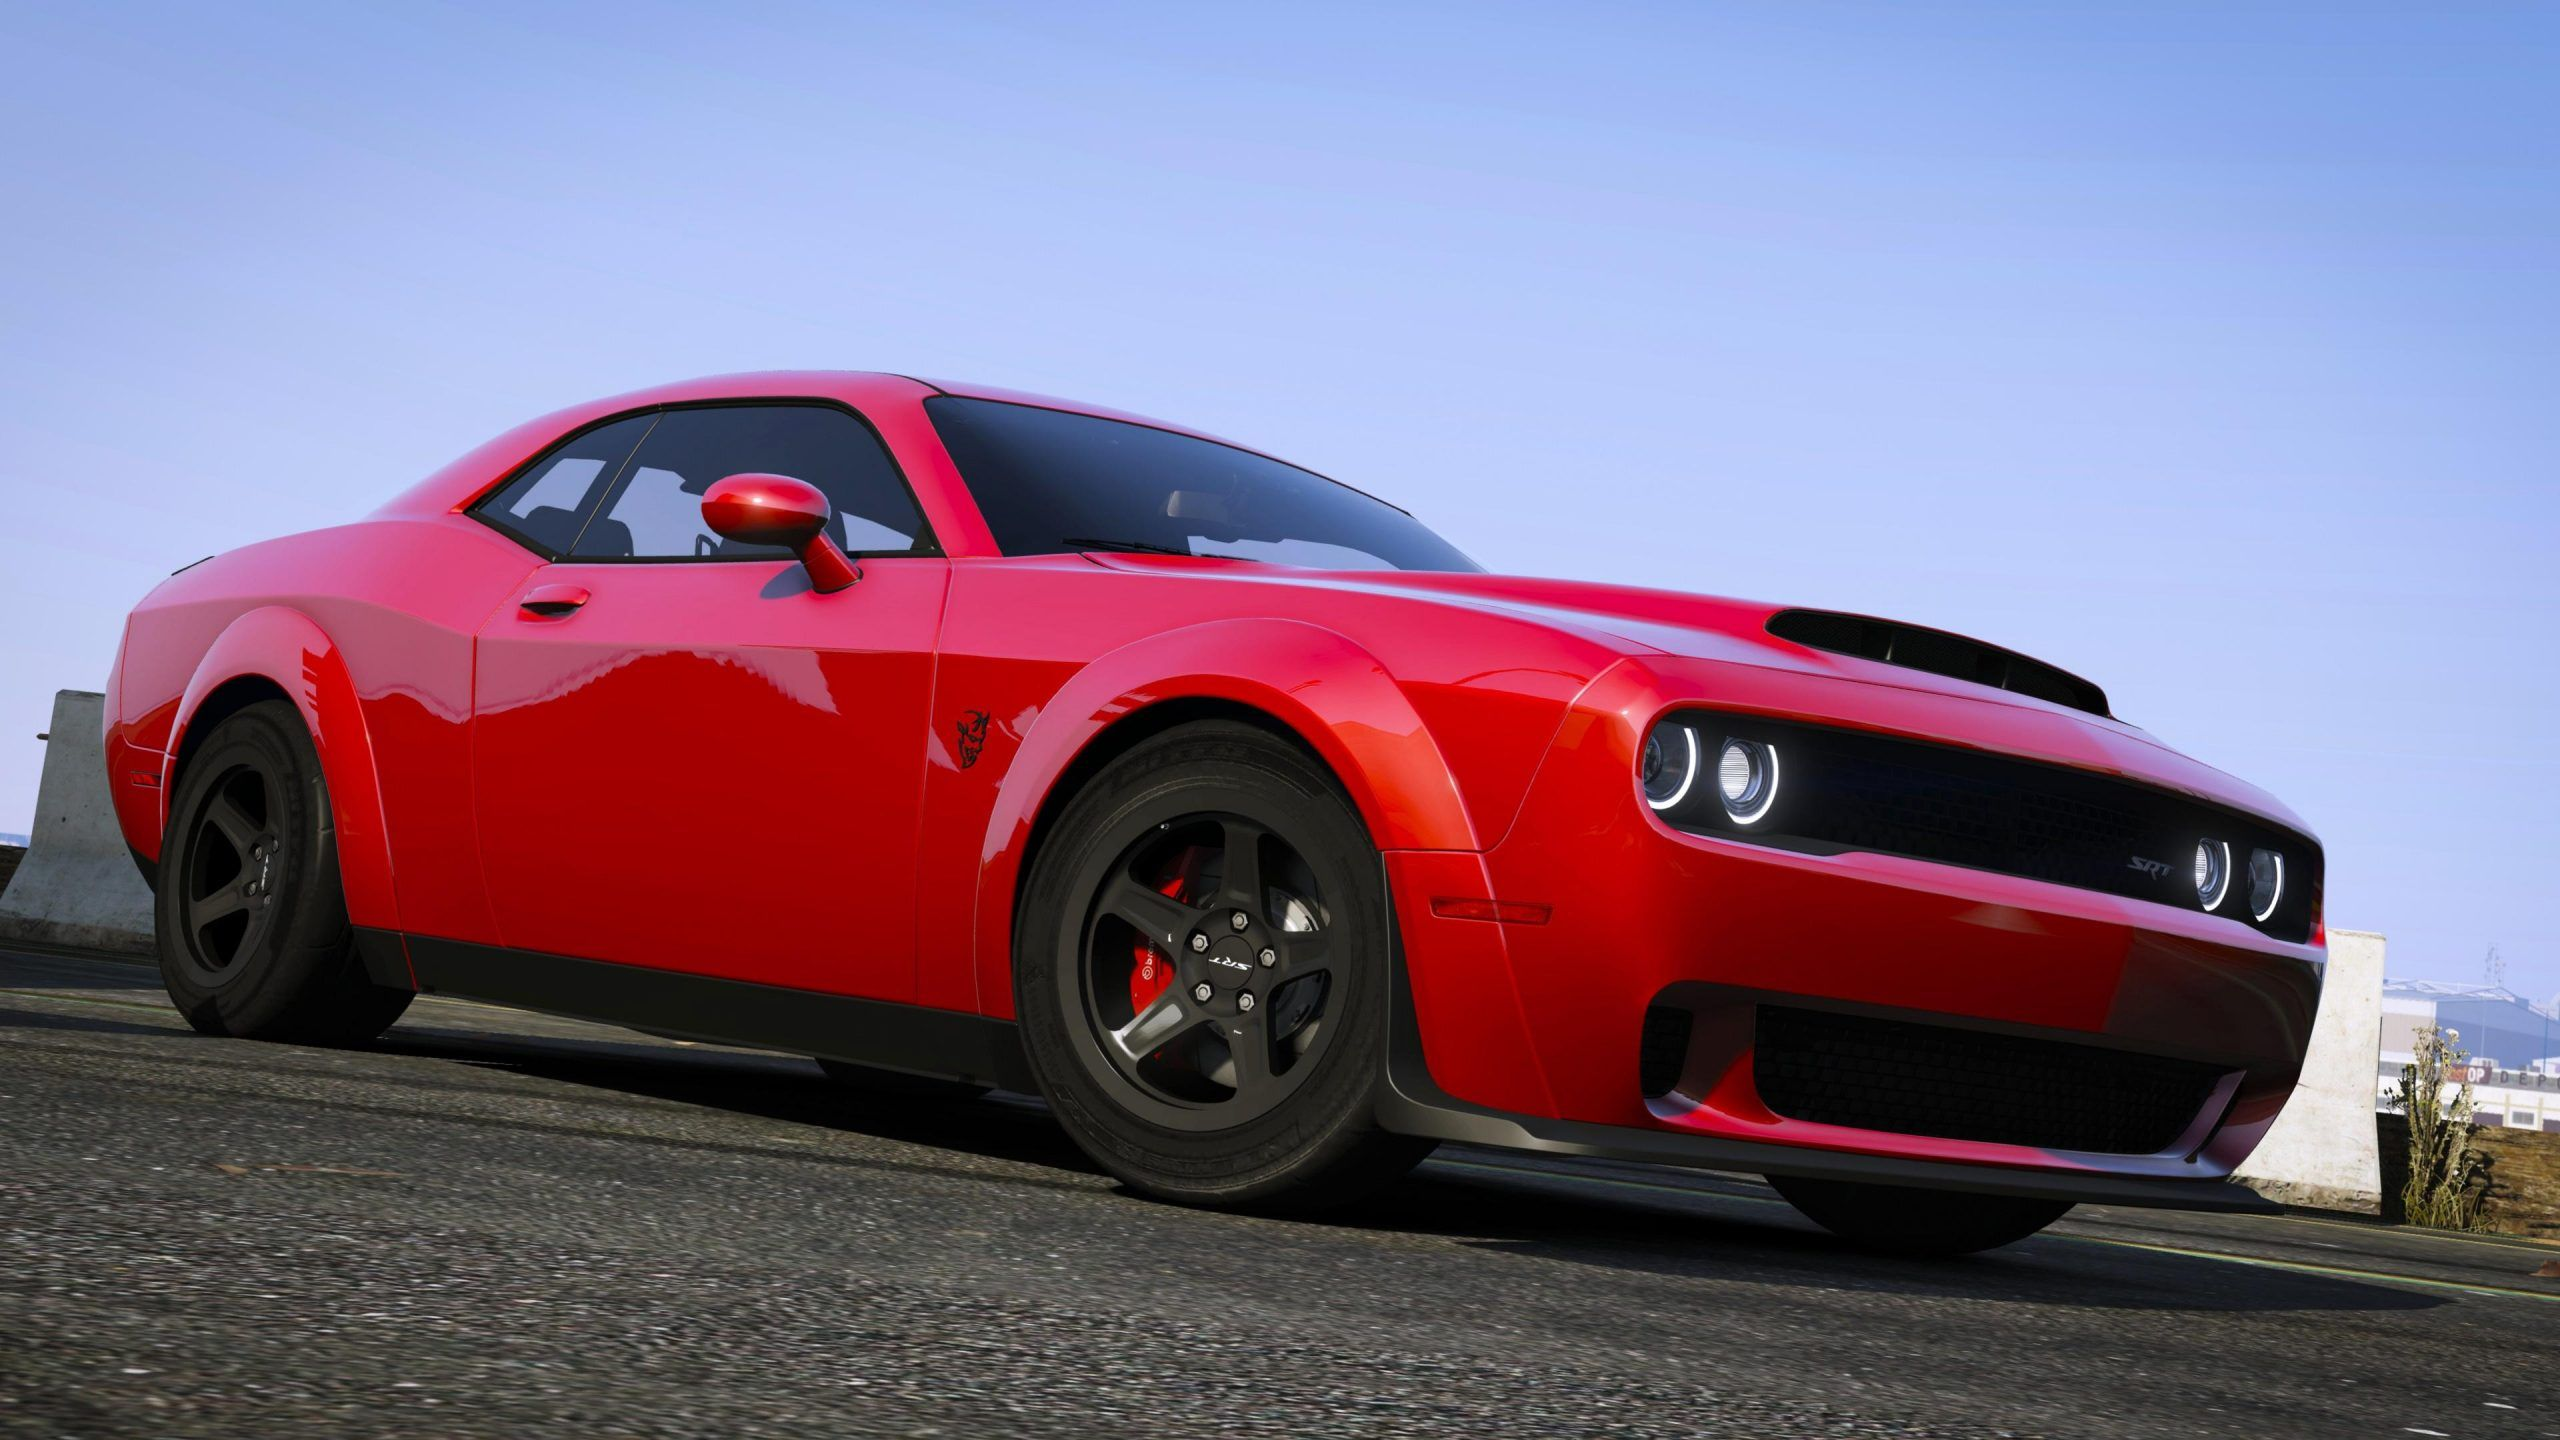 Dodge Demon In Gta 1 The Real Reason Behind Dodge Demon In Gta 1 In 2021 2018 Dodge Challenger Srt Dodge Challenger Srt Challenger Srt Demon